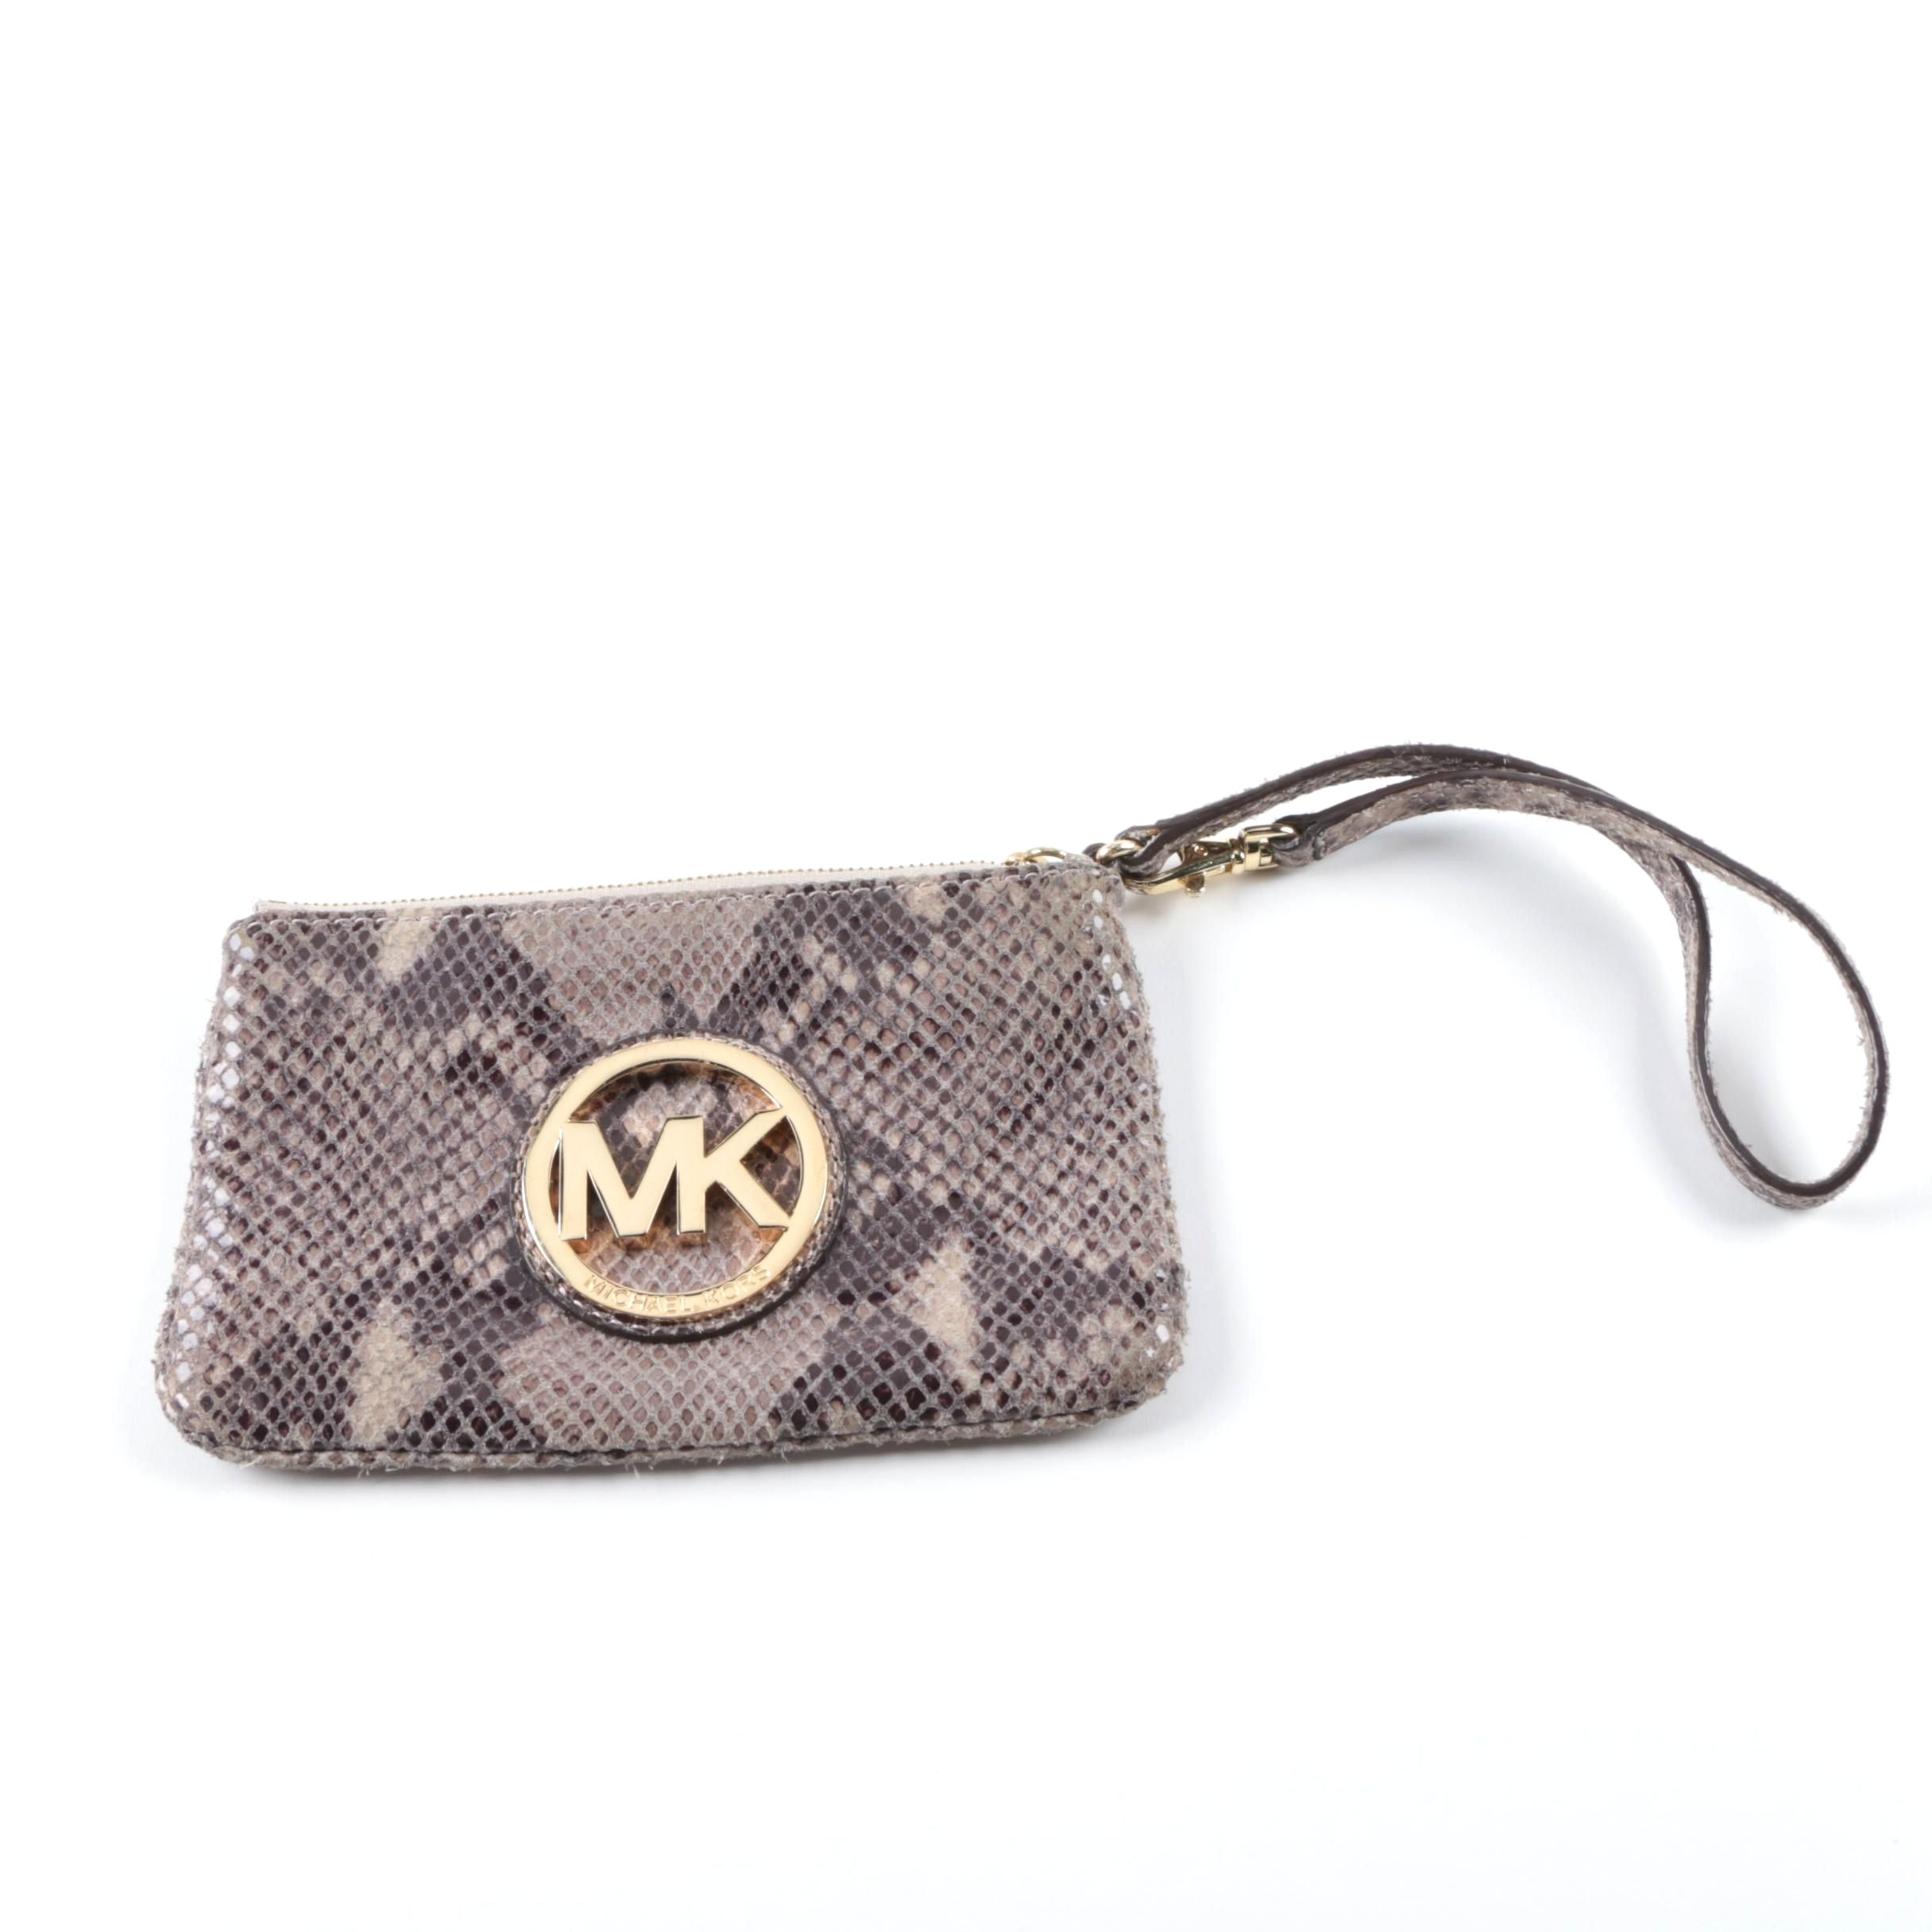 Michael Kors Embossed Python Skin Leather Wristlet